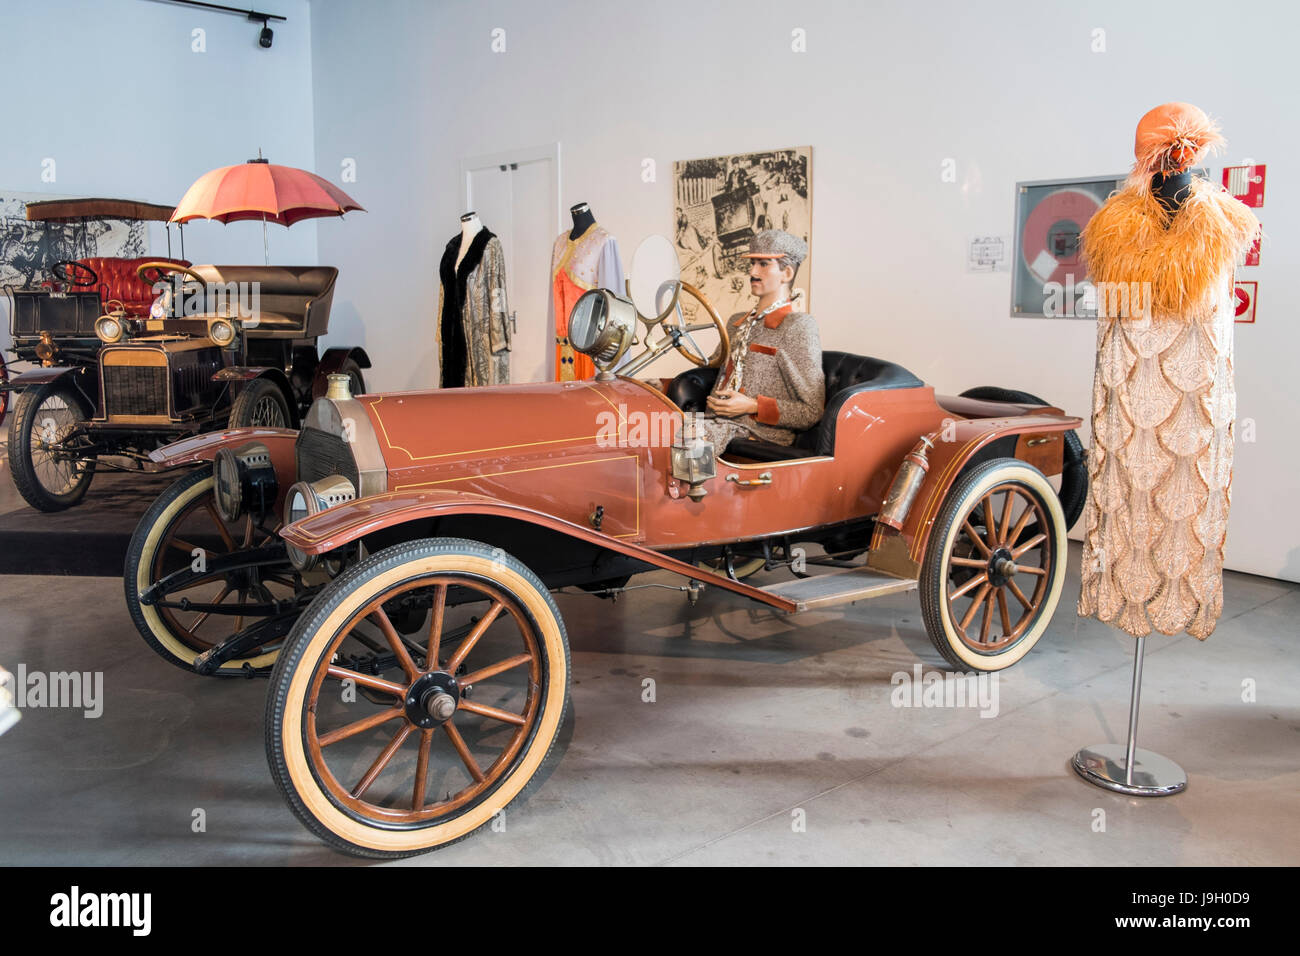 1912 Hupmobile. Automobile museum of Málaga, Andalusia, Spain. - Stock Image